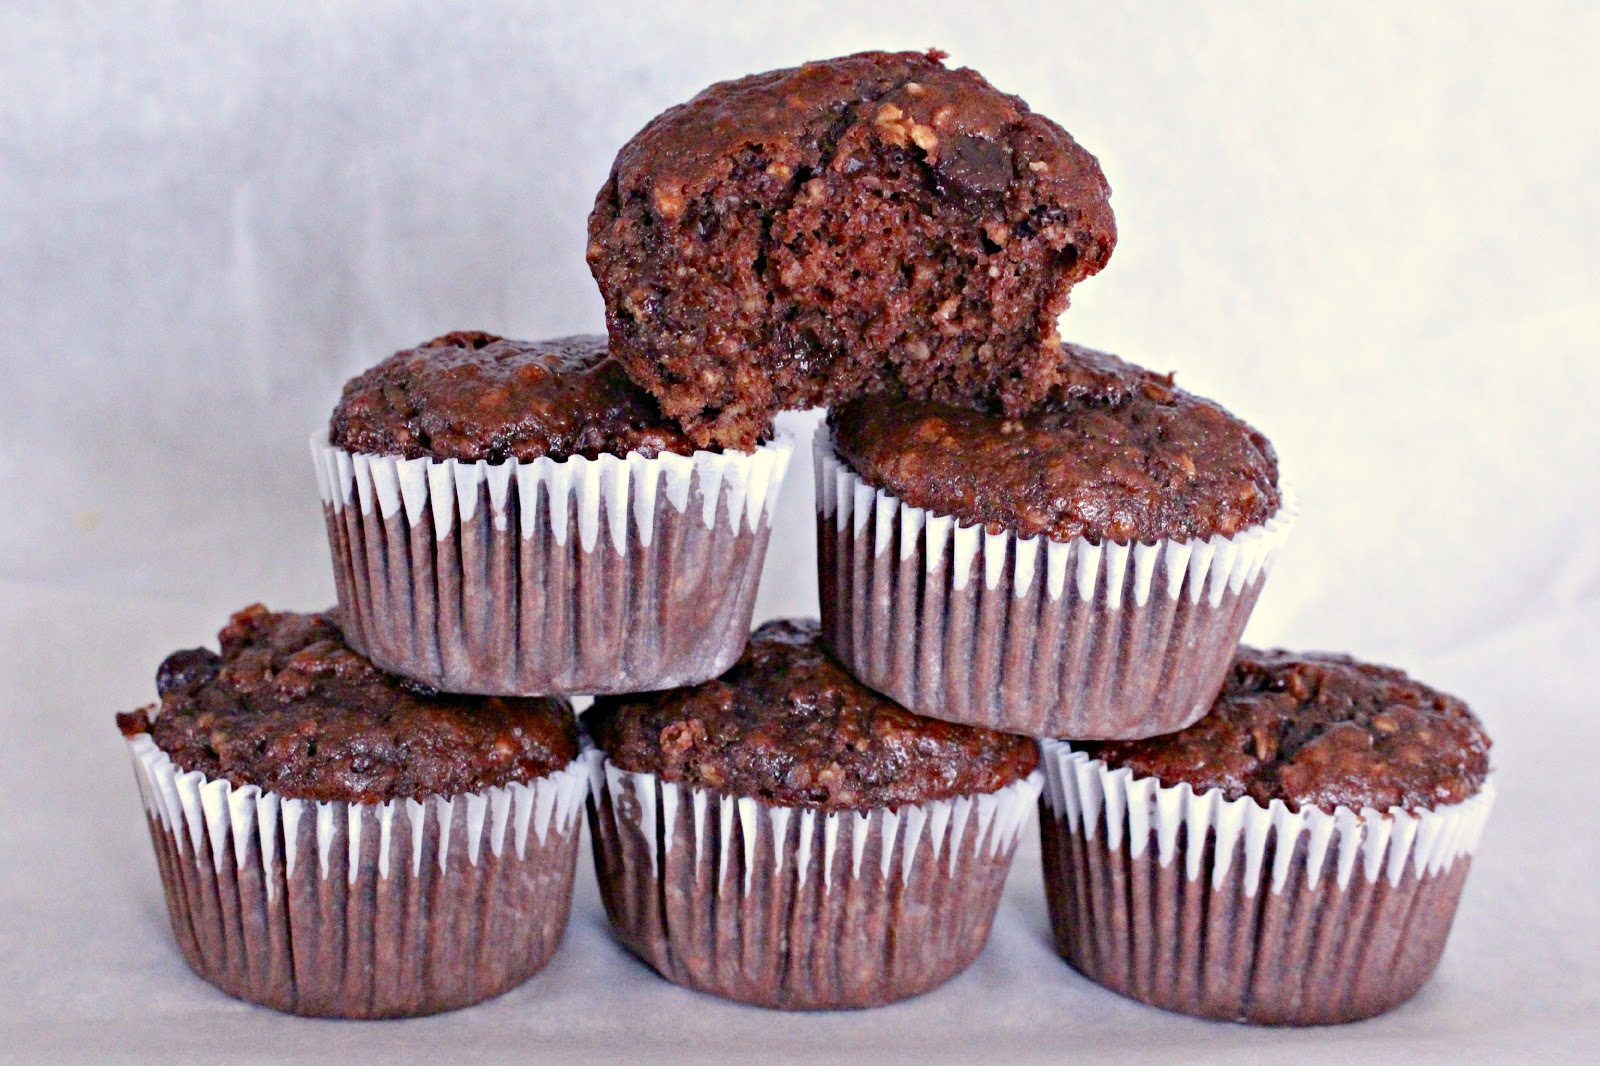 banana oatmeal chocolate hemp seed muffins